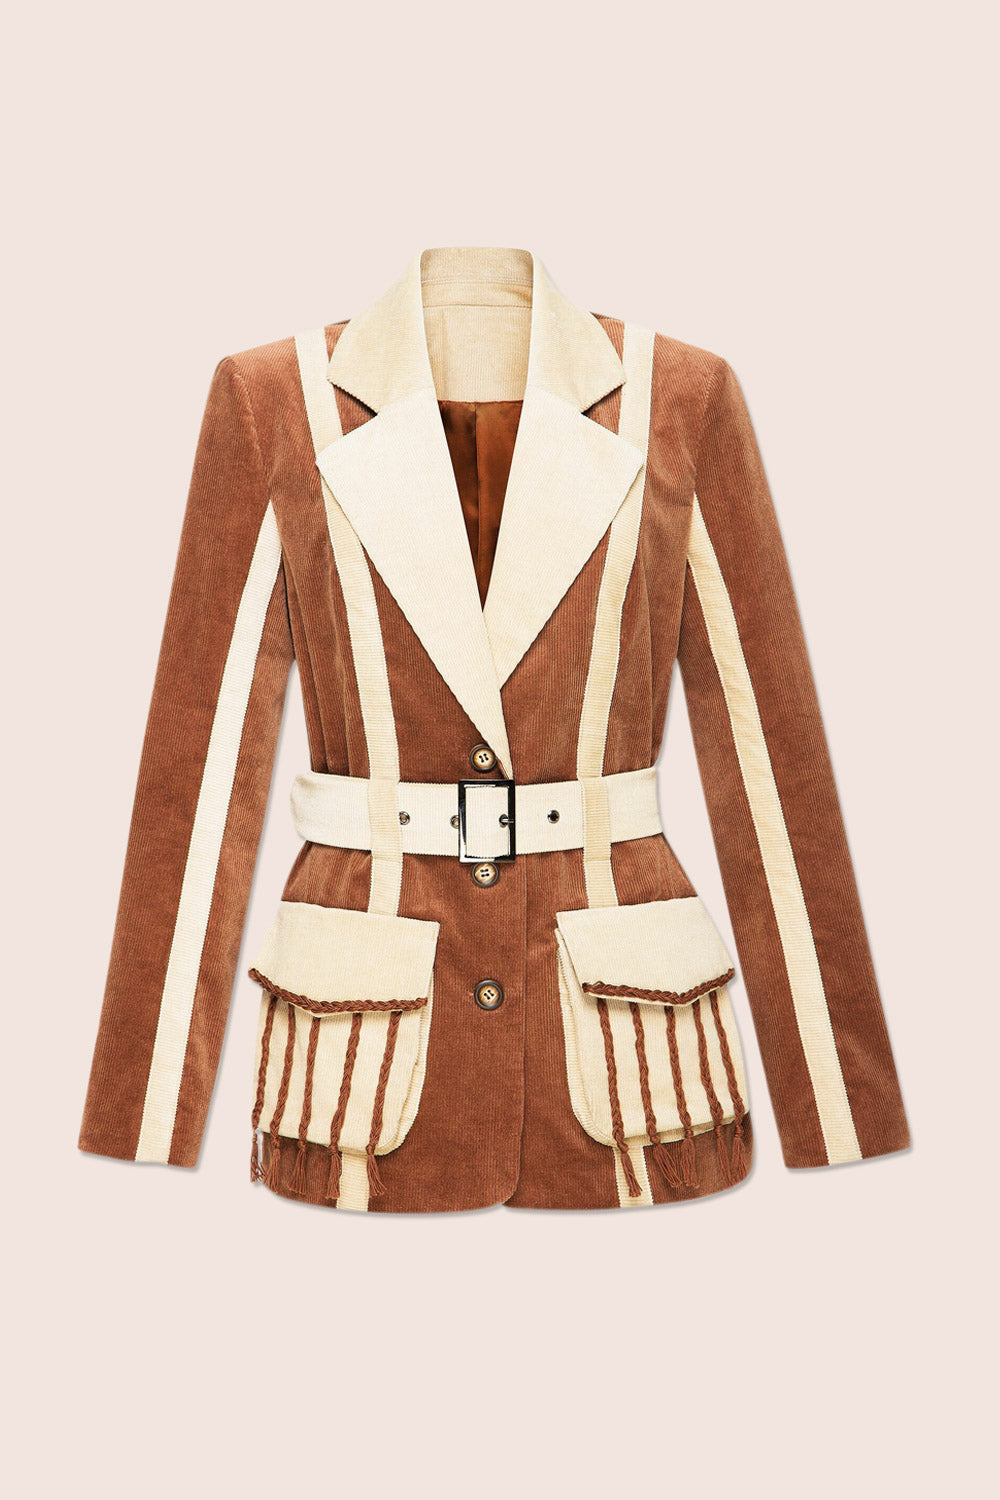 Phoenix Jacket in Brown